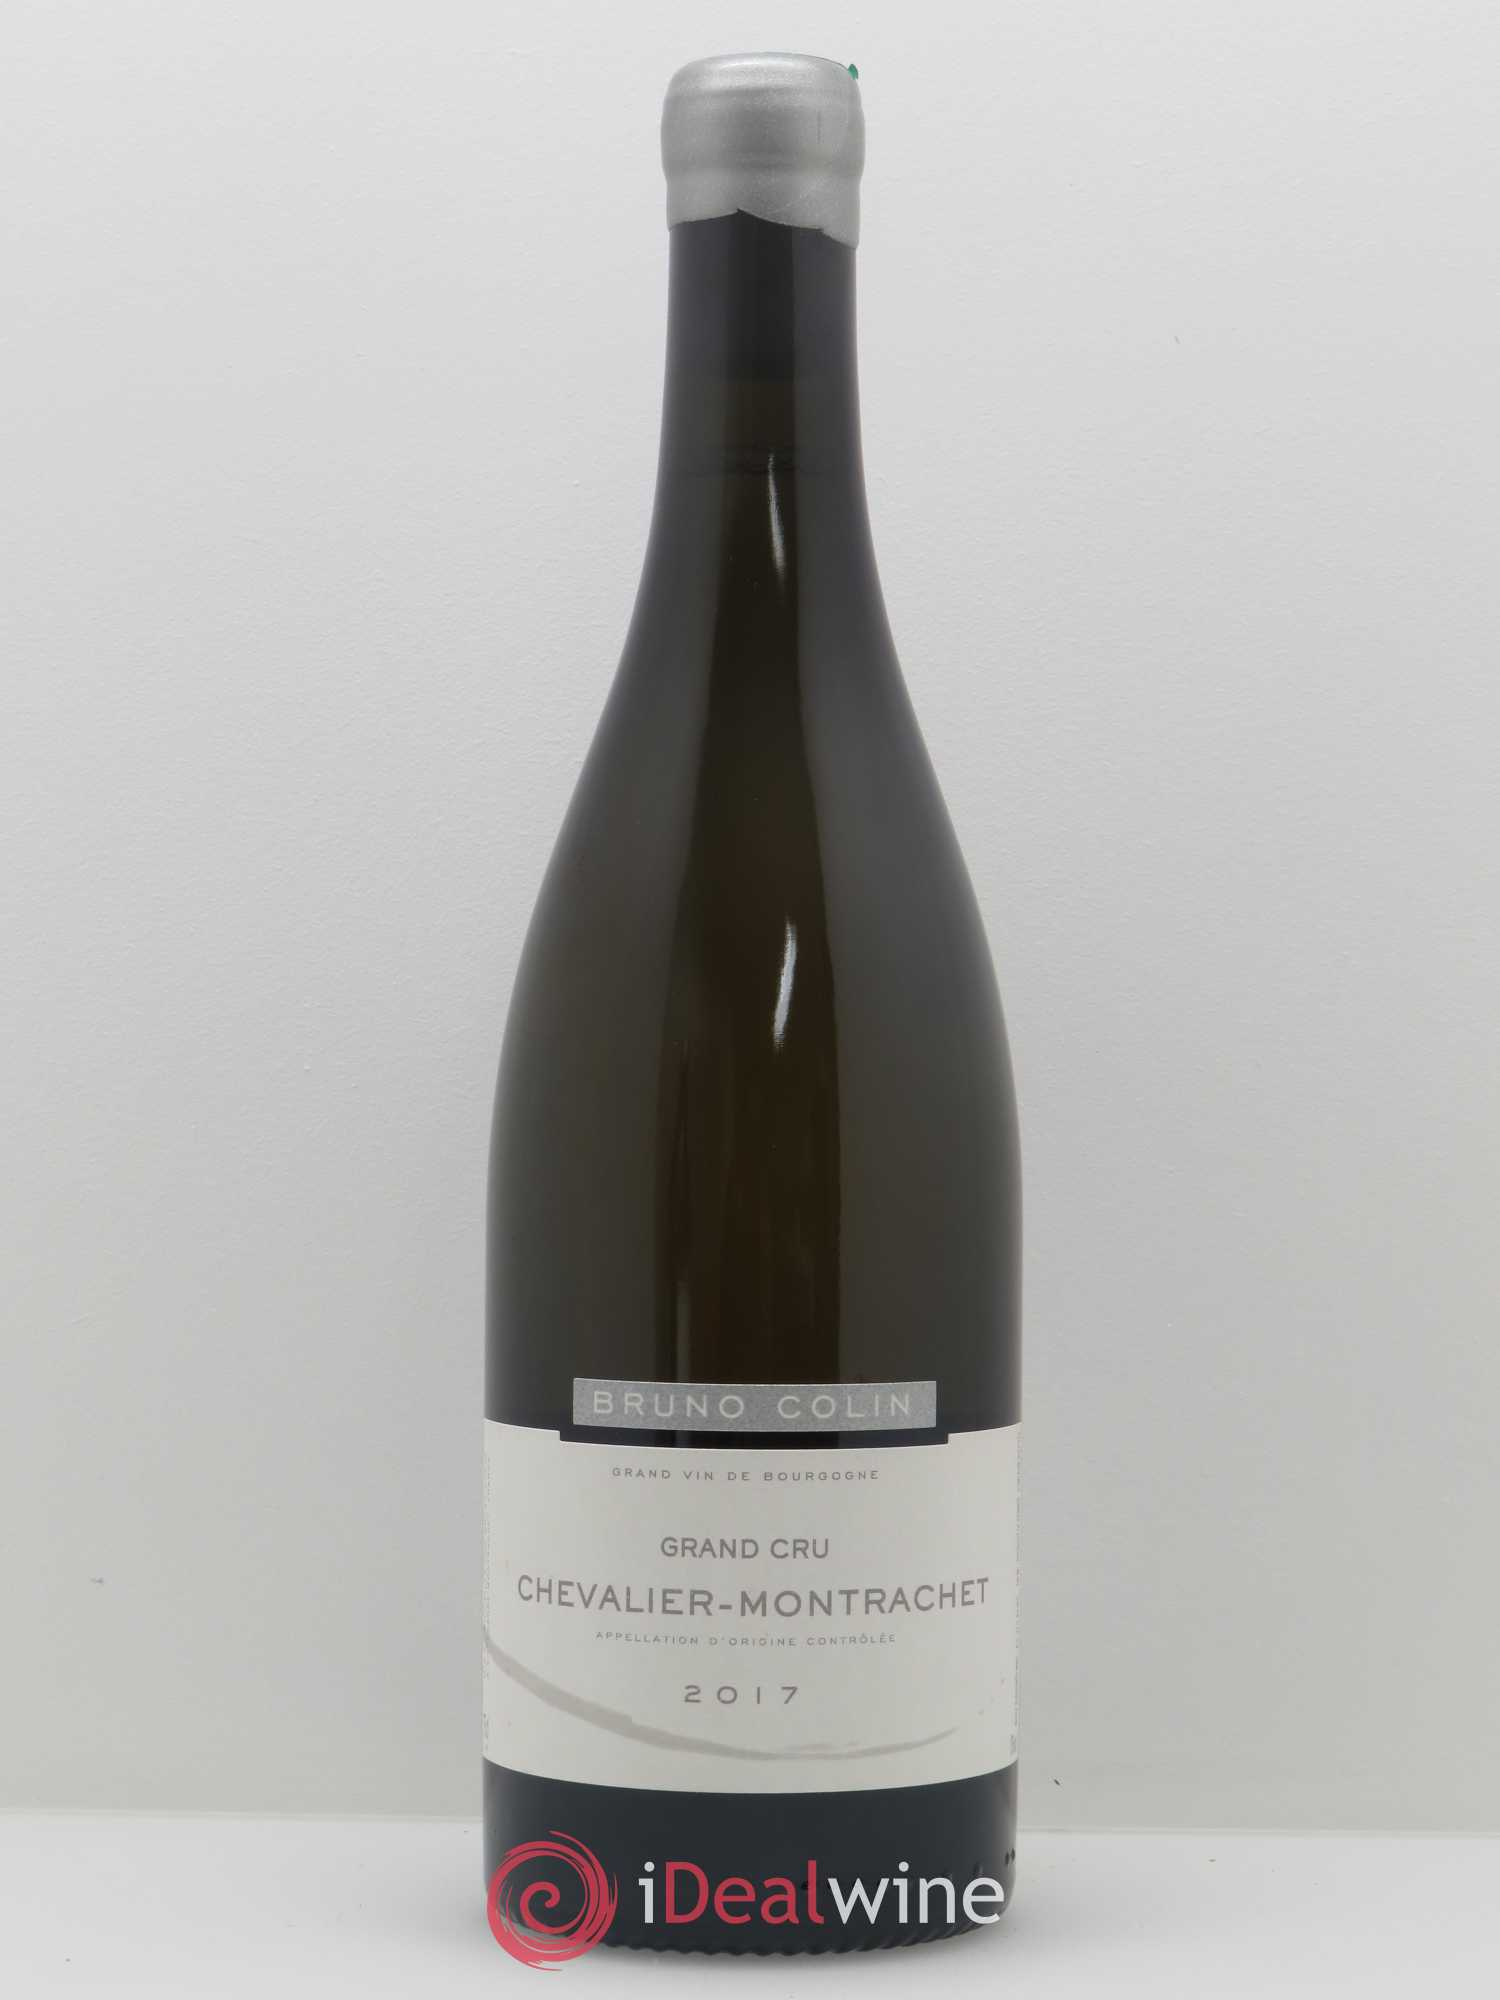 Chevalier-Montrachet Grand Cru Bruno Colin  2017 - Lot de 1 Bouteille